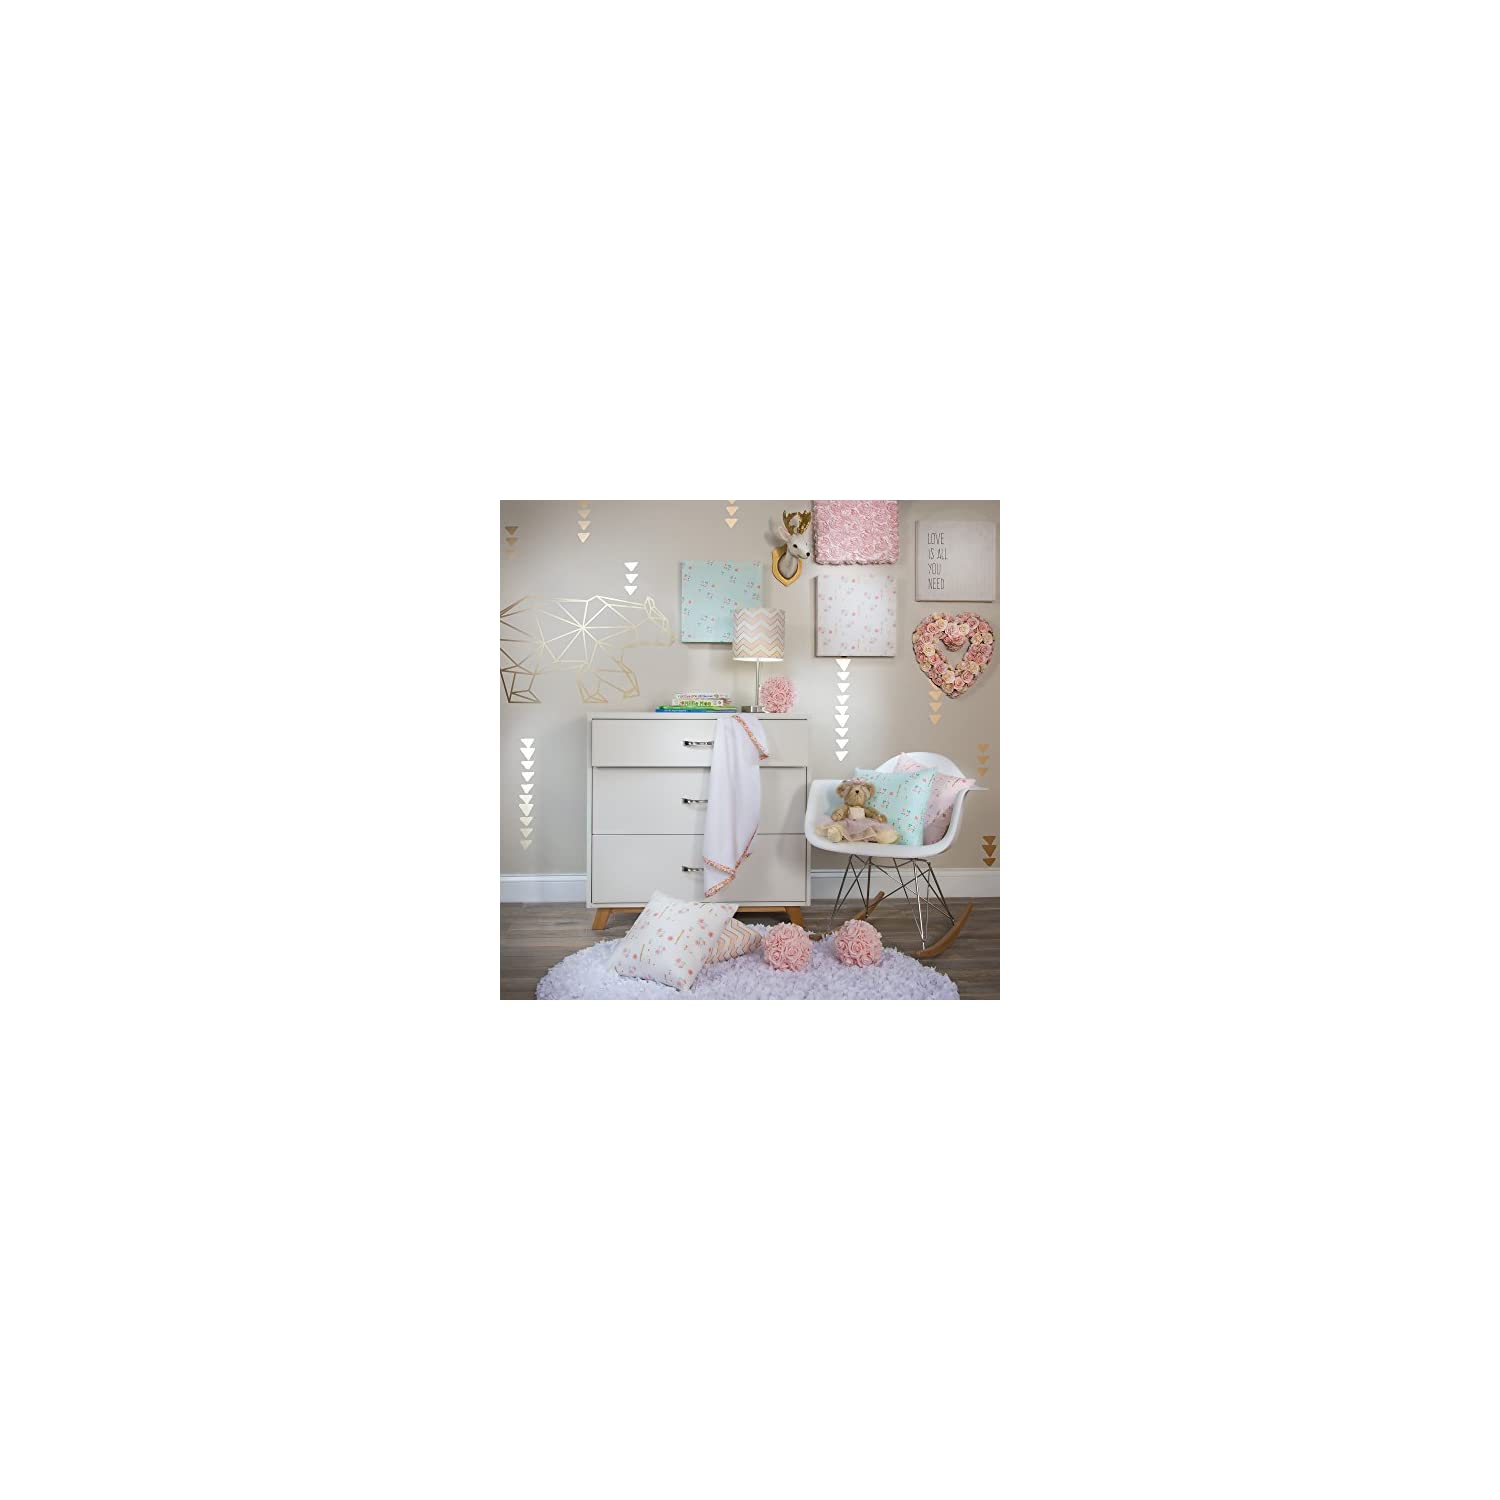 Glenna Jean Cottage Collection Audrey Pillow, Pink Floral